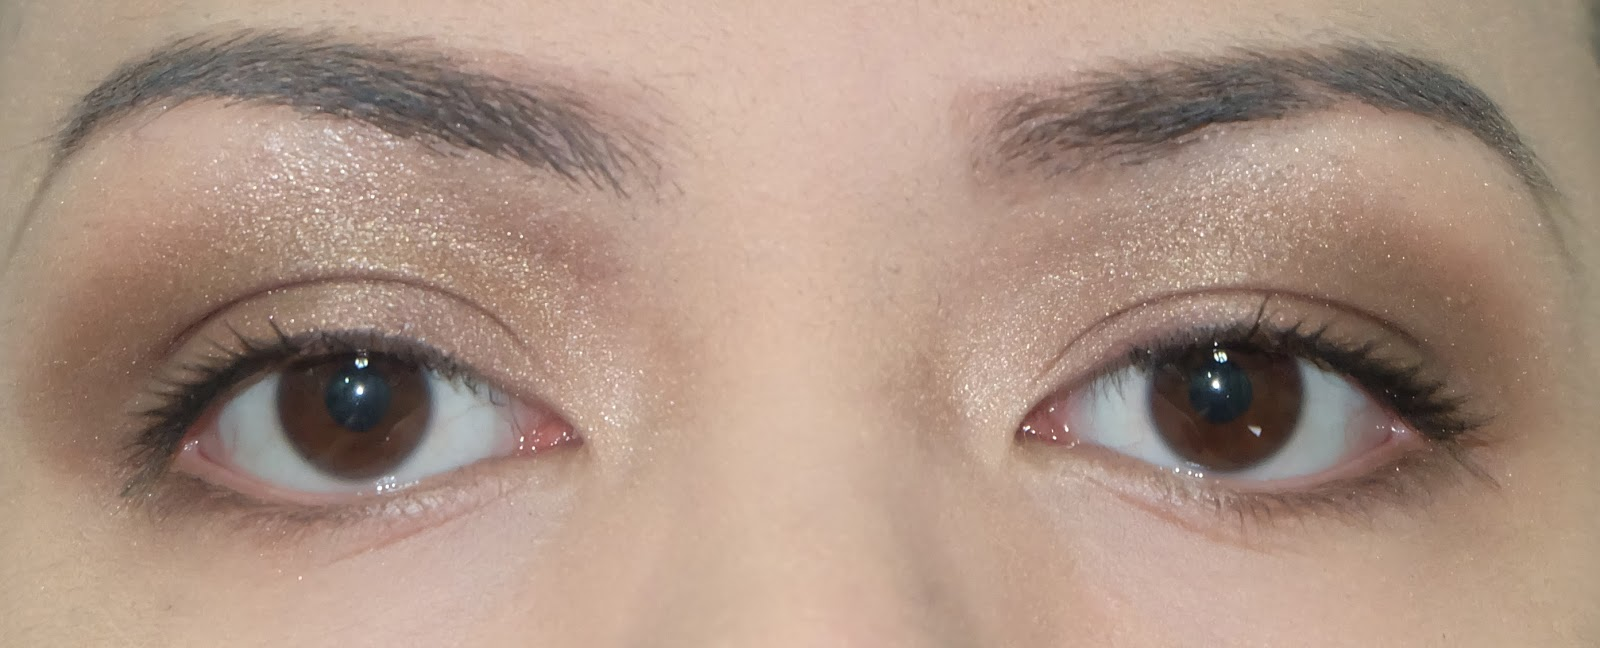 Swatch of Stila Eyes are Windows Palette in Soul  best eye shadow product review